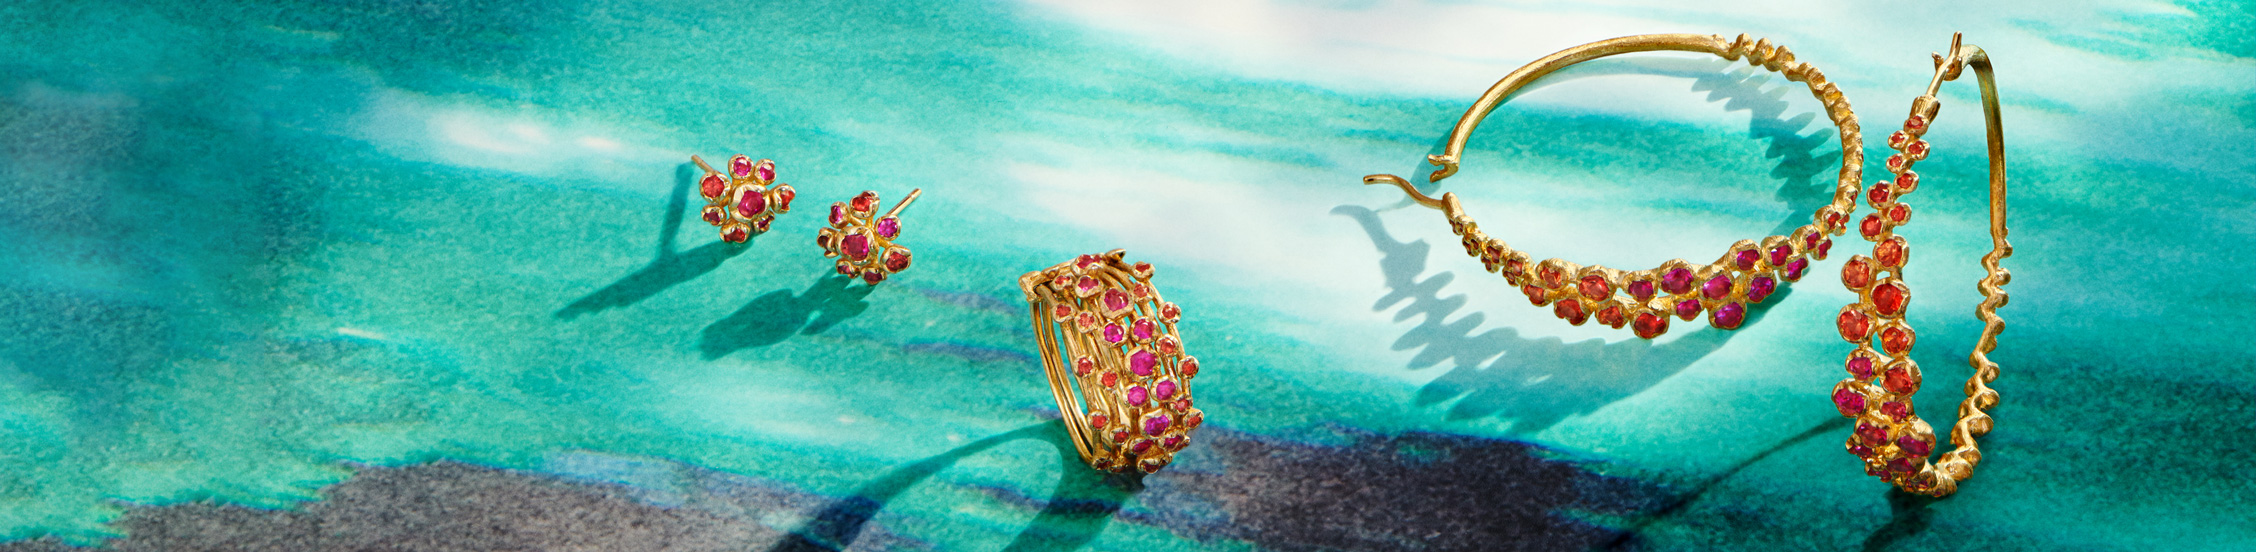 Annoushka Jewels of Colour